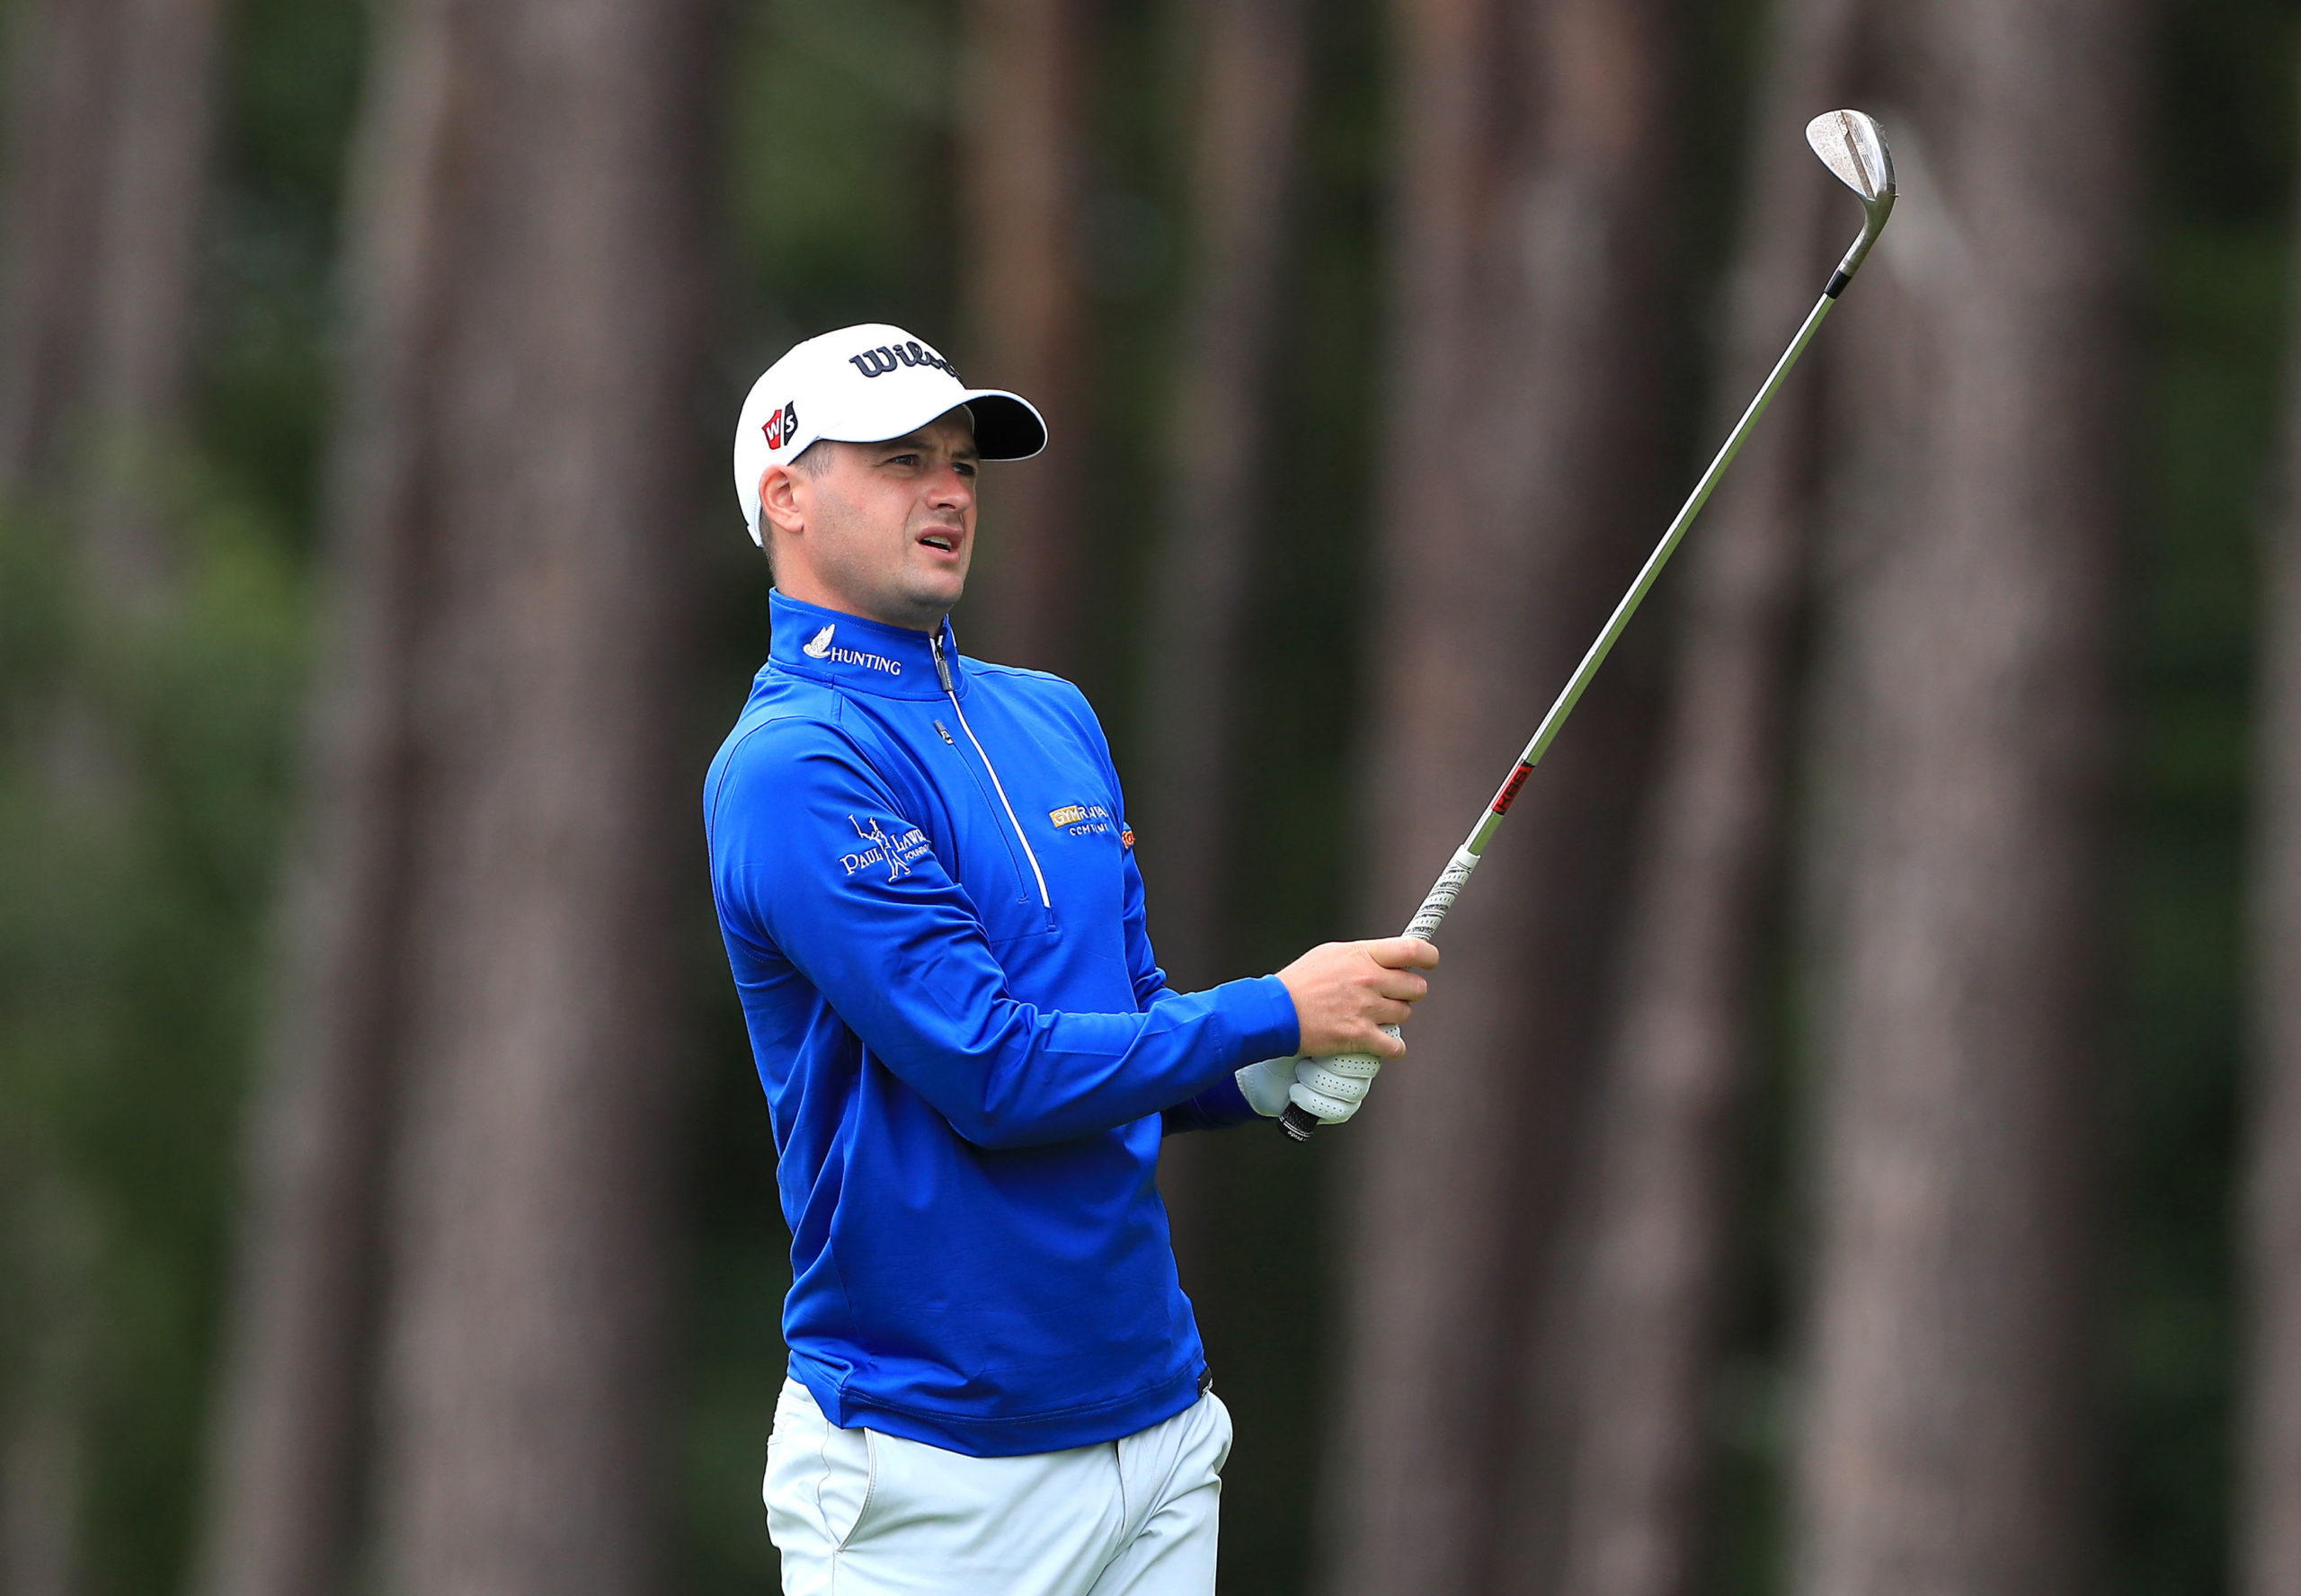 Scotland's David Law on the 16th during day one of the Betfred British Masters at Close House.